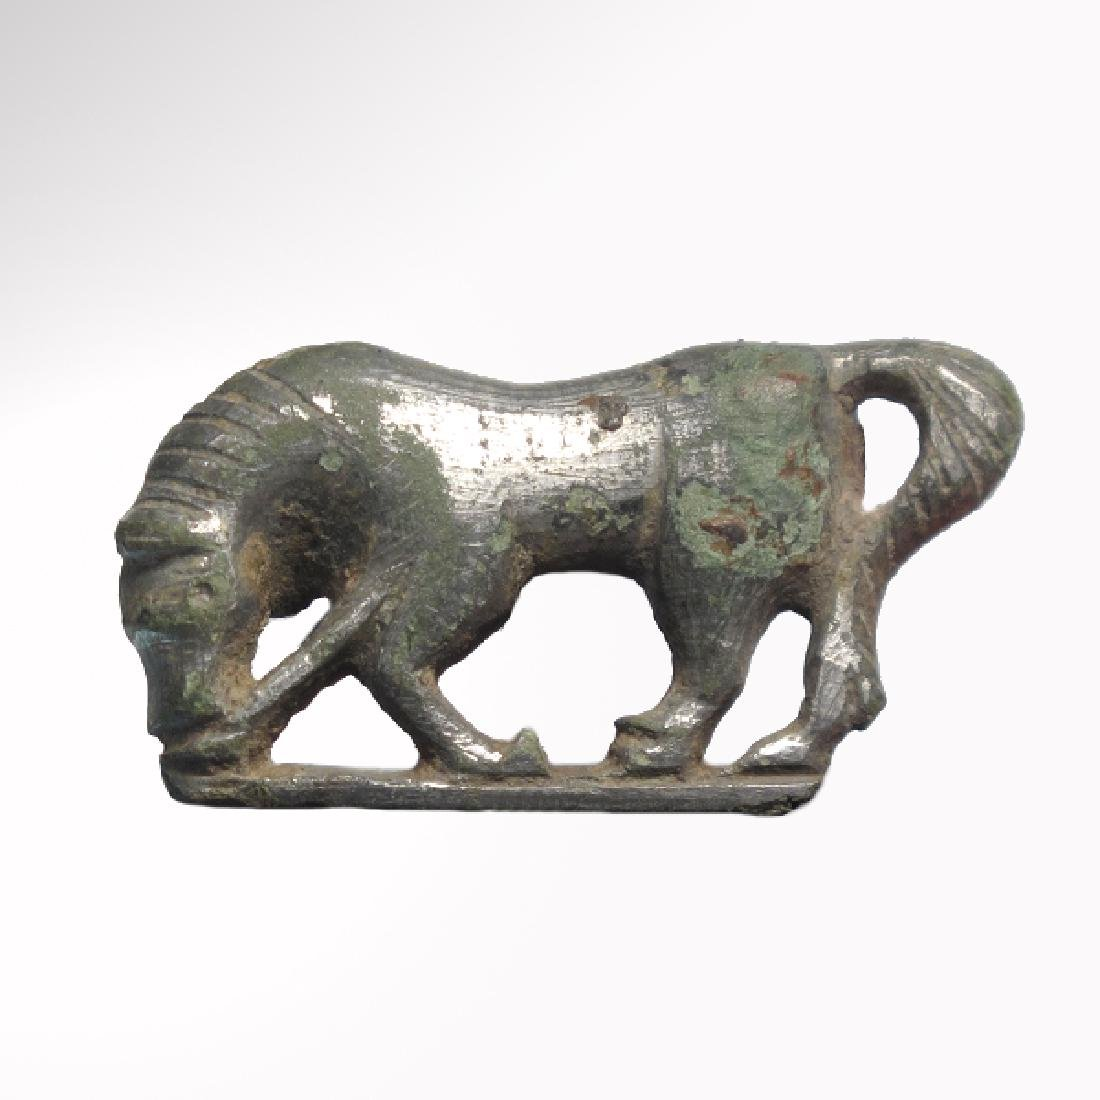 Roman Silver Plated Fibula Brooch in the Form of a